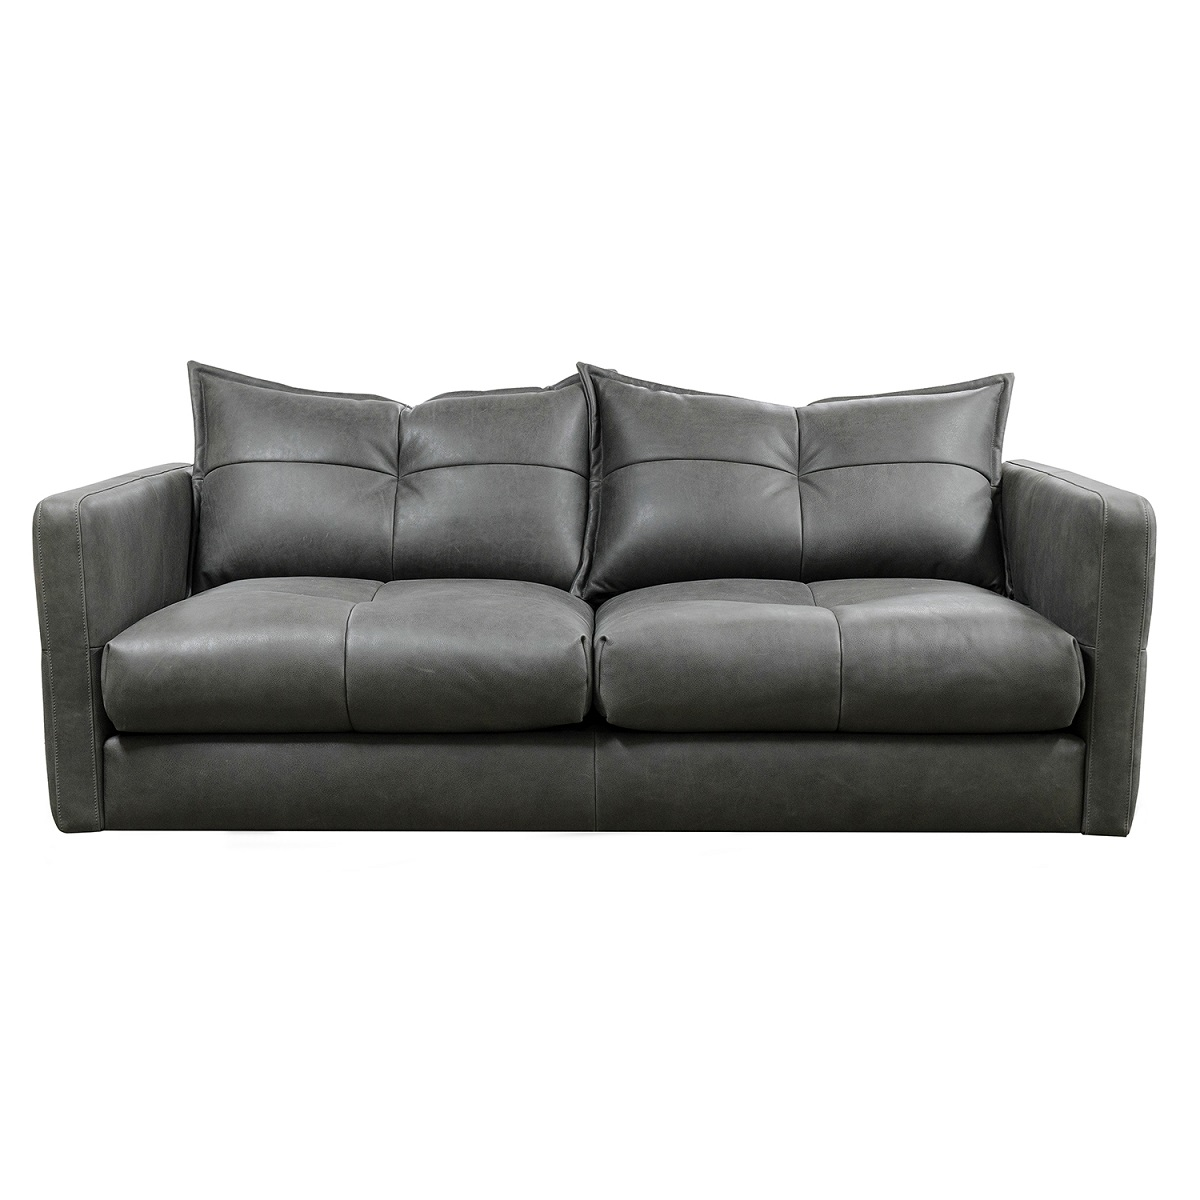 Tod 4 Seater Sofa